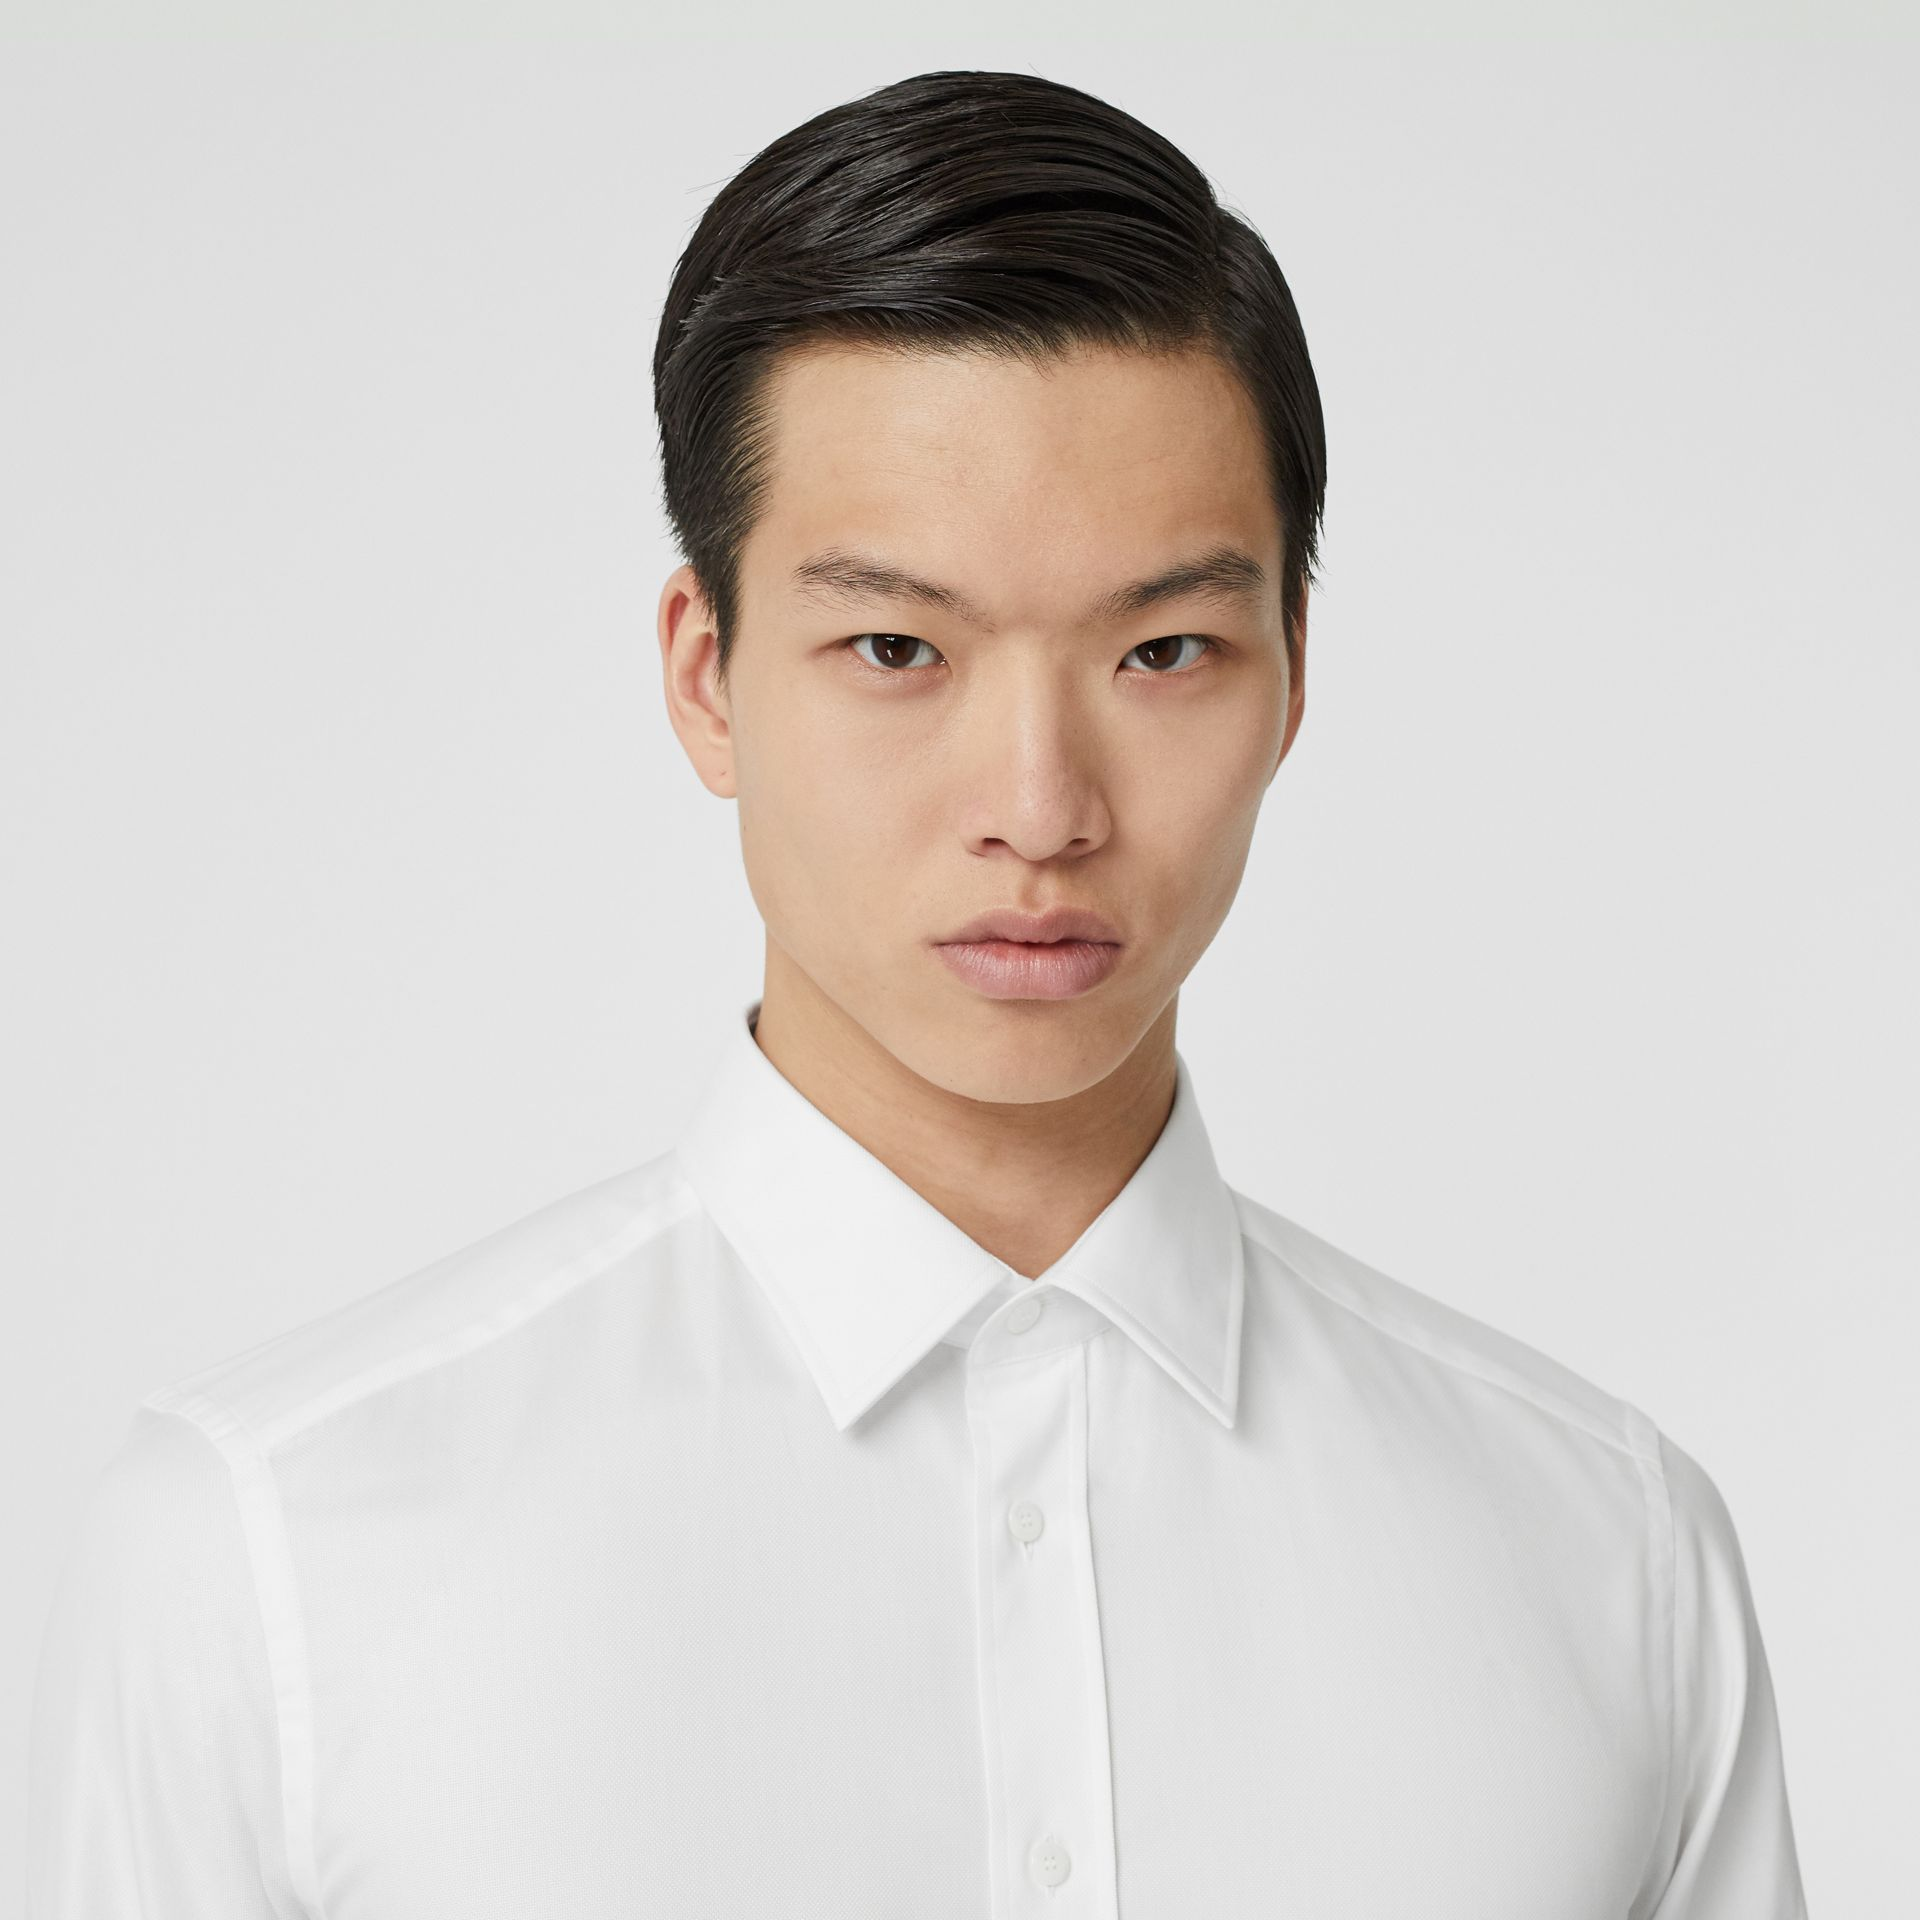 Classic Fit Monogram Motif Cotton Oxford Shirt in White - Men | Burberry United States - gallery image 1